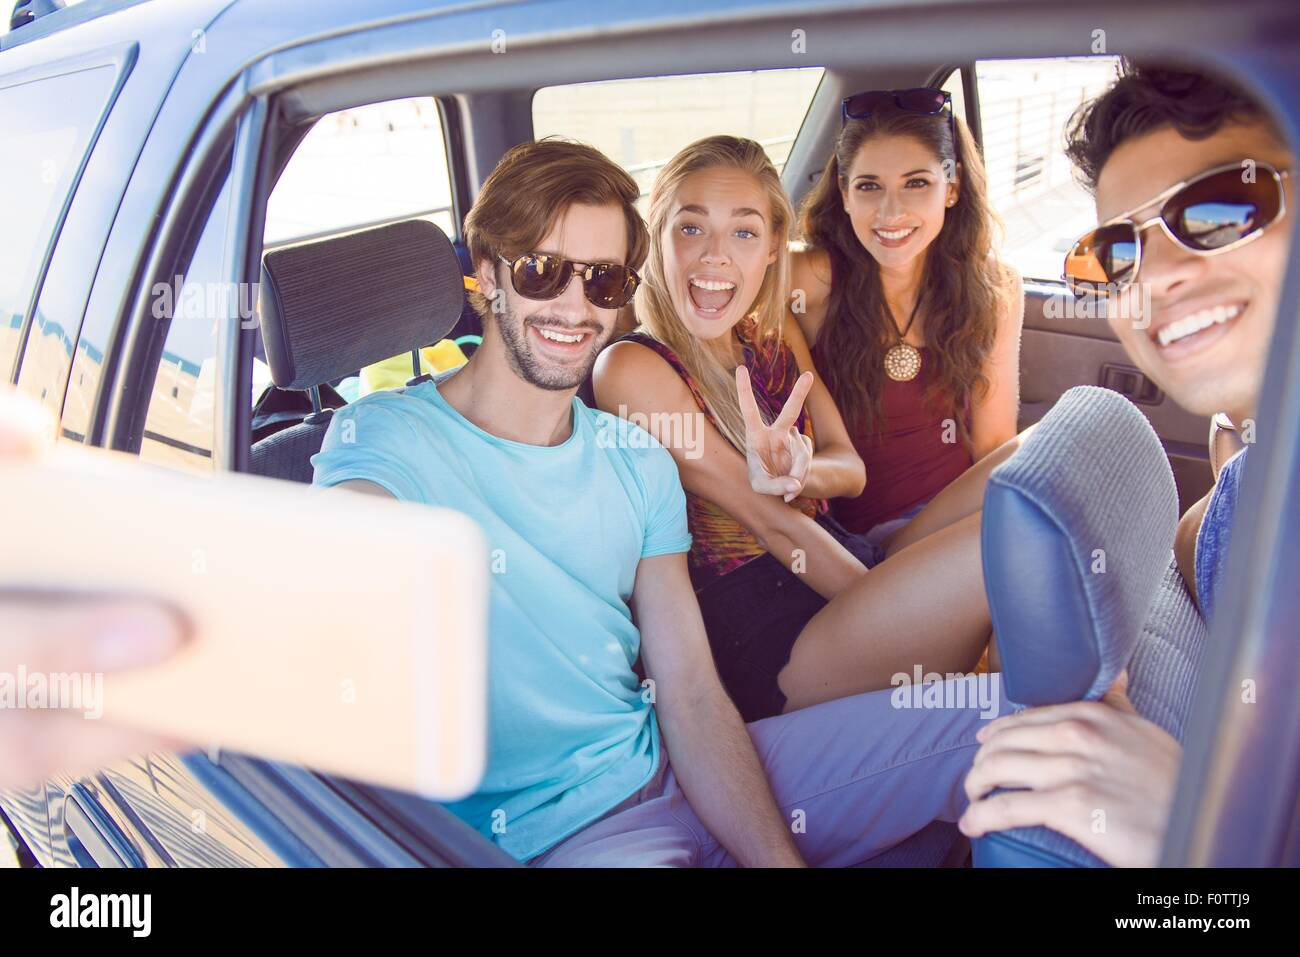 Group of friends sitting in car, taking self portrait with smartphone, laughing - Stock Image